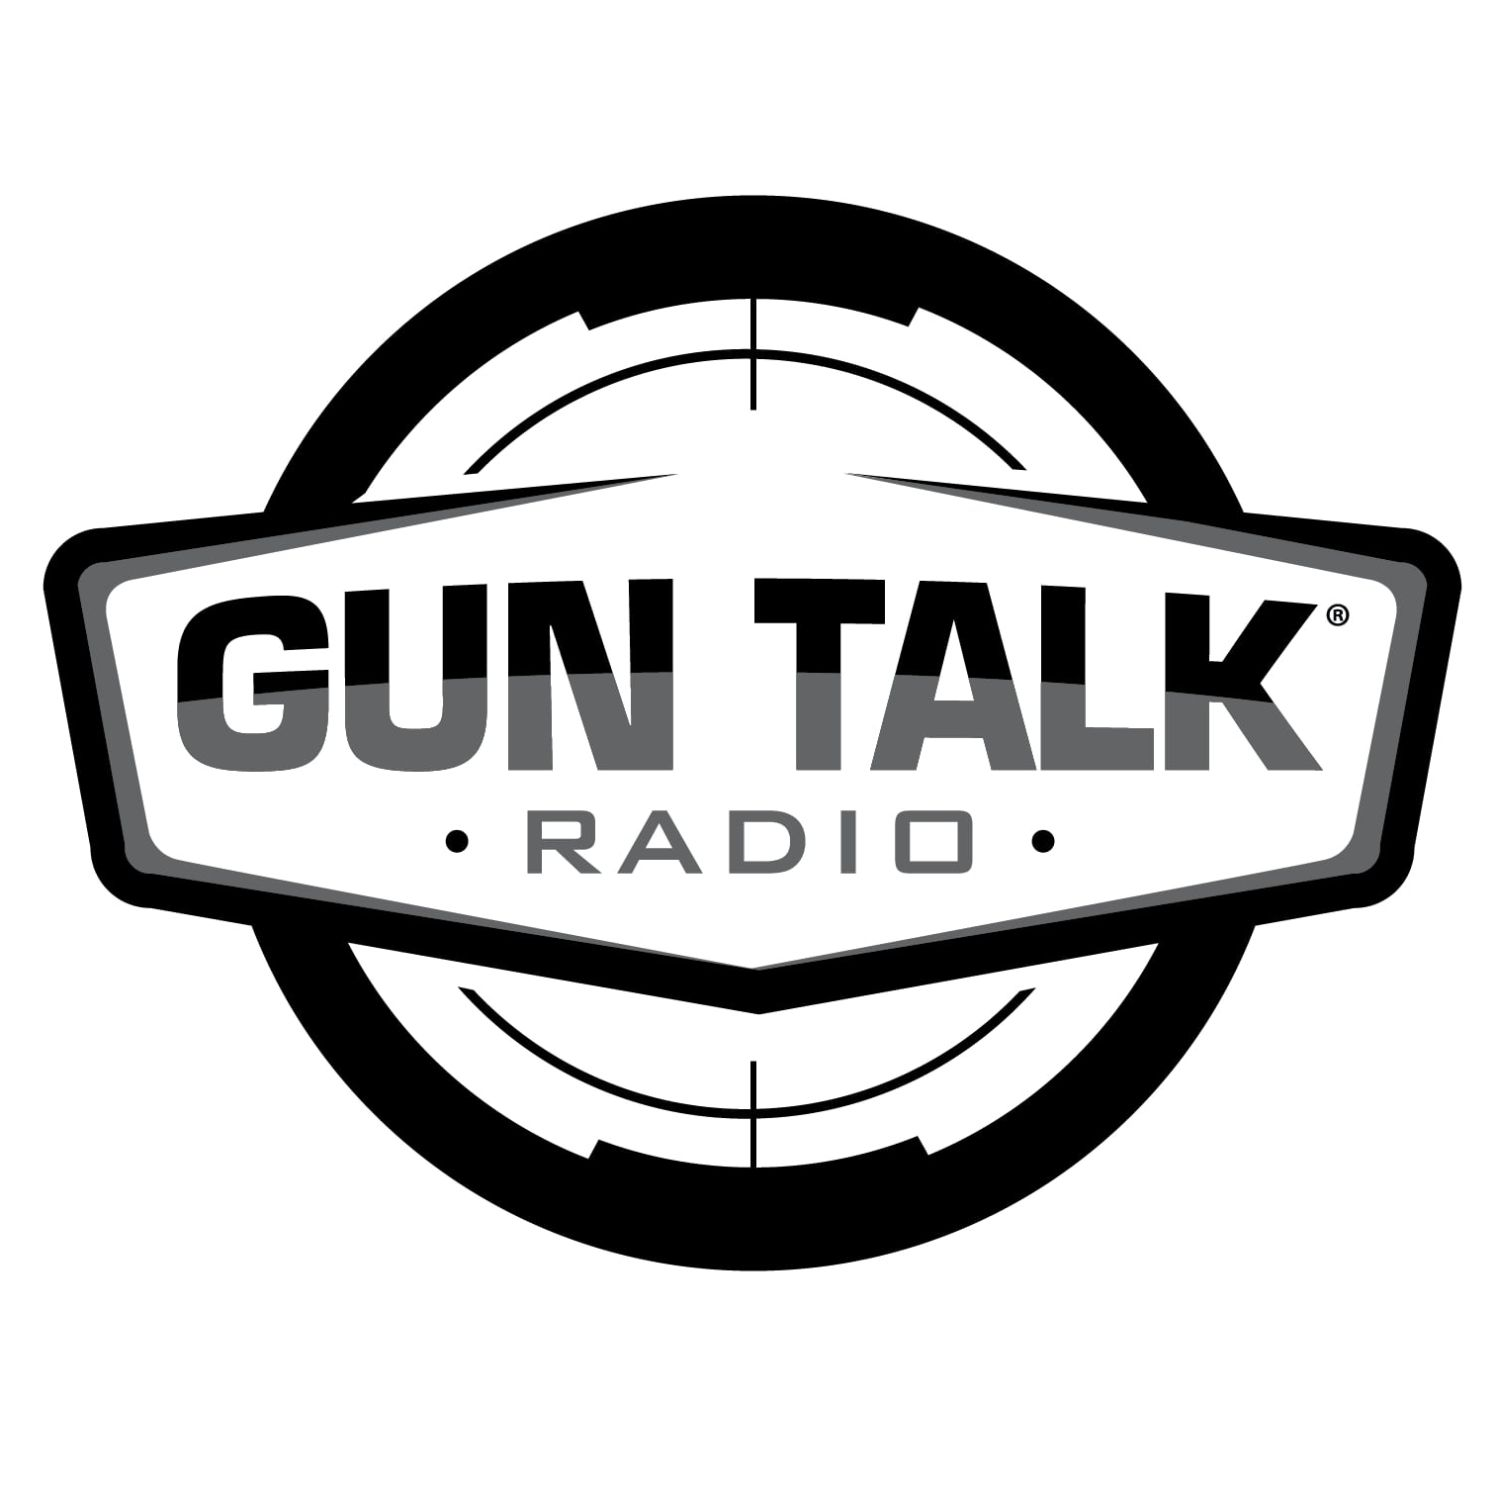 Artwork for Guntalk 2007-03-25 Part C